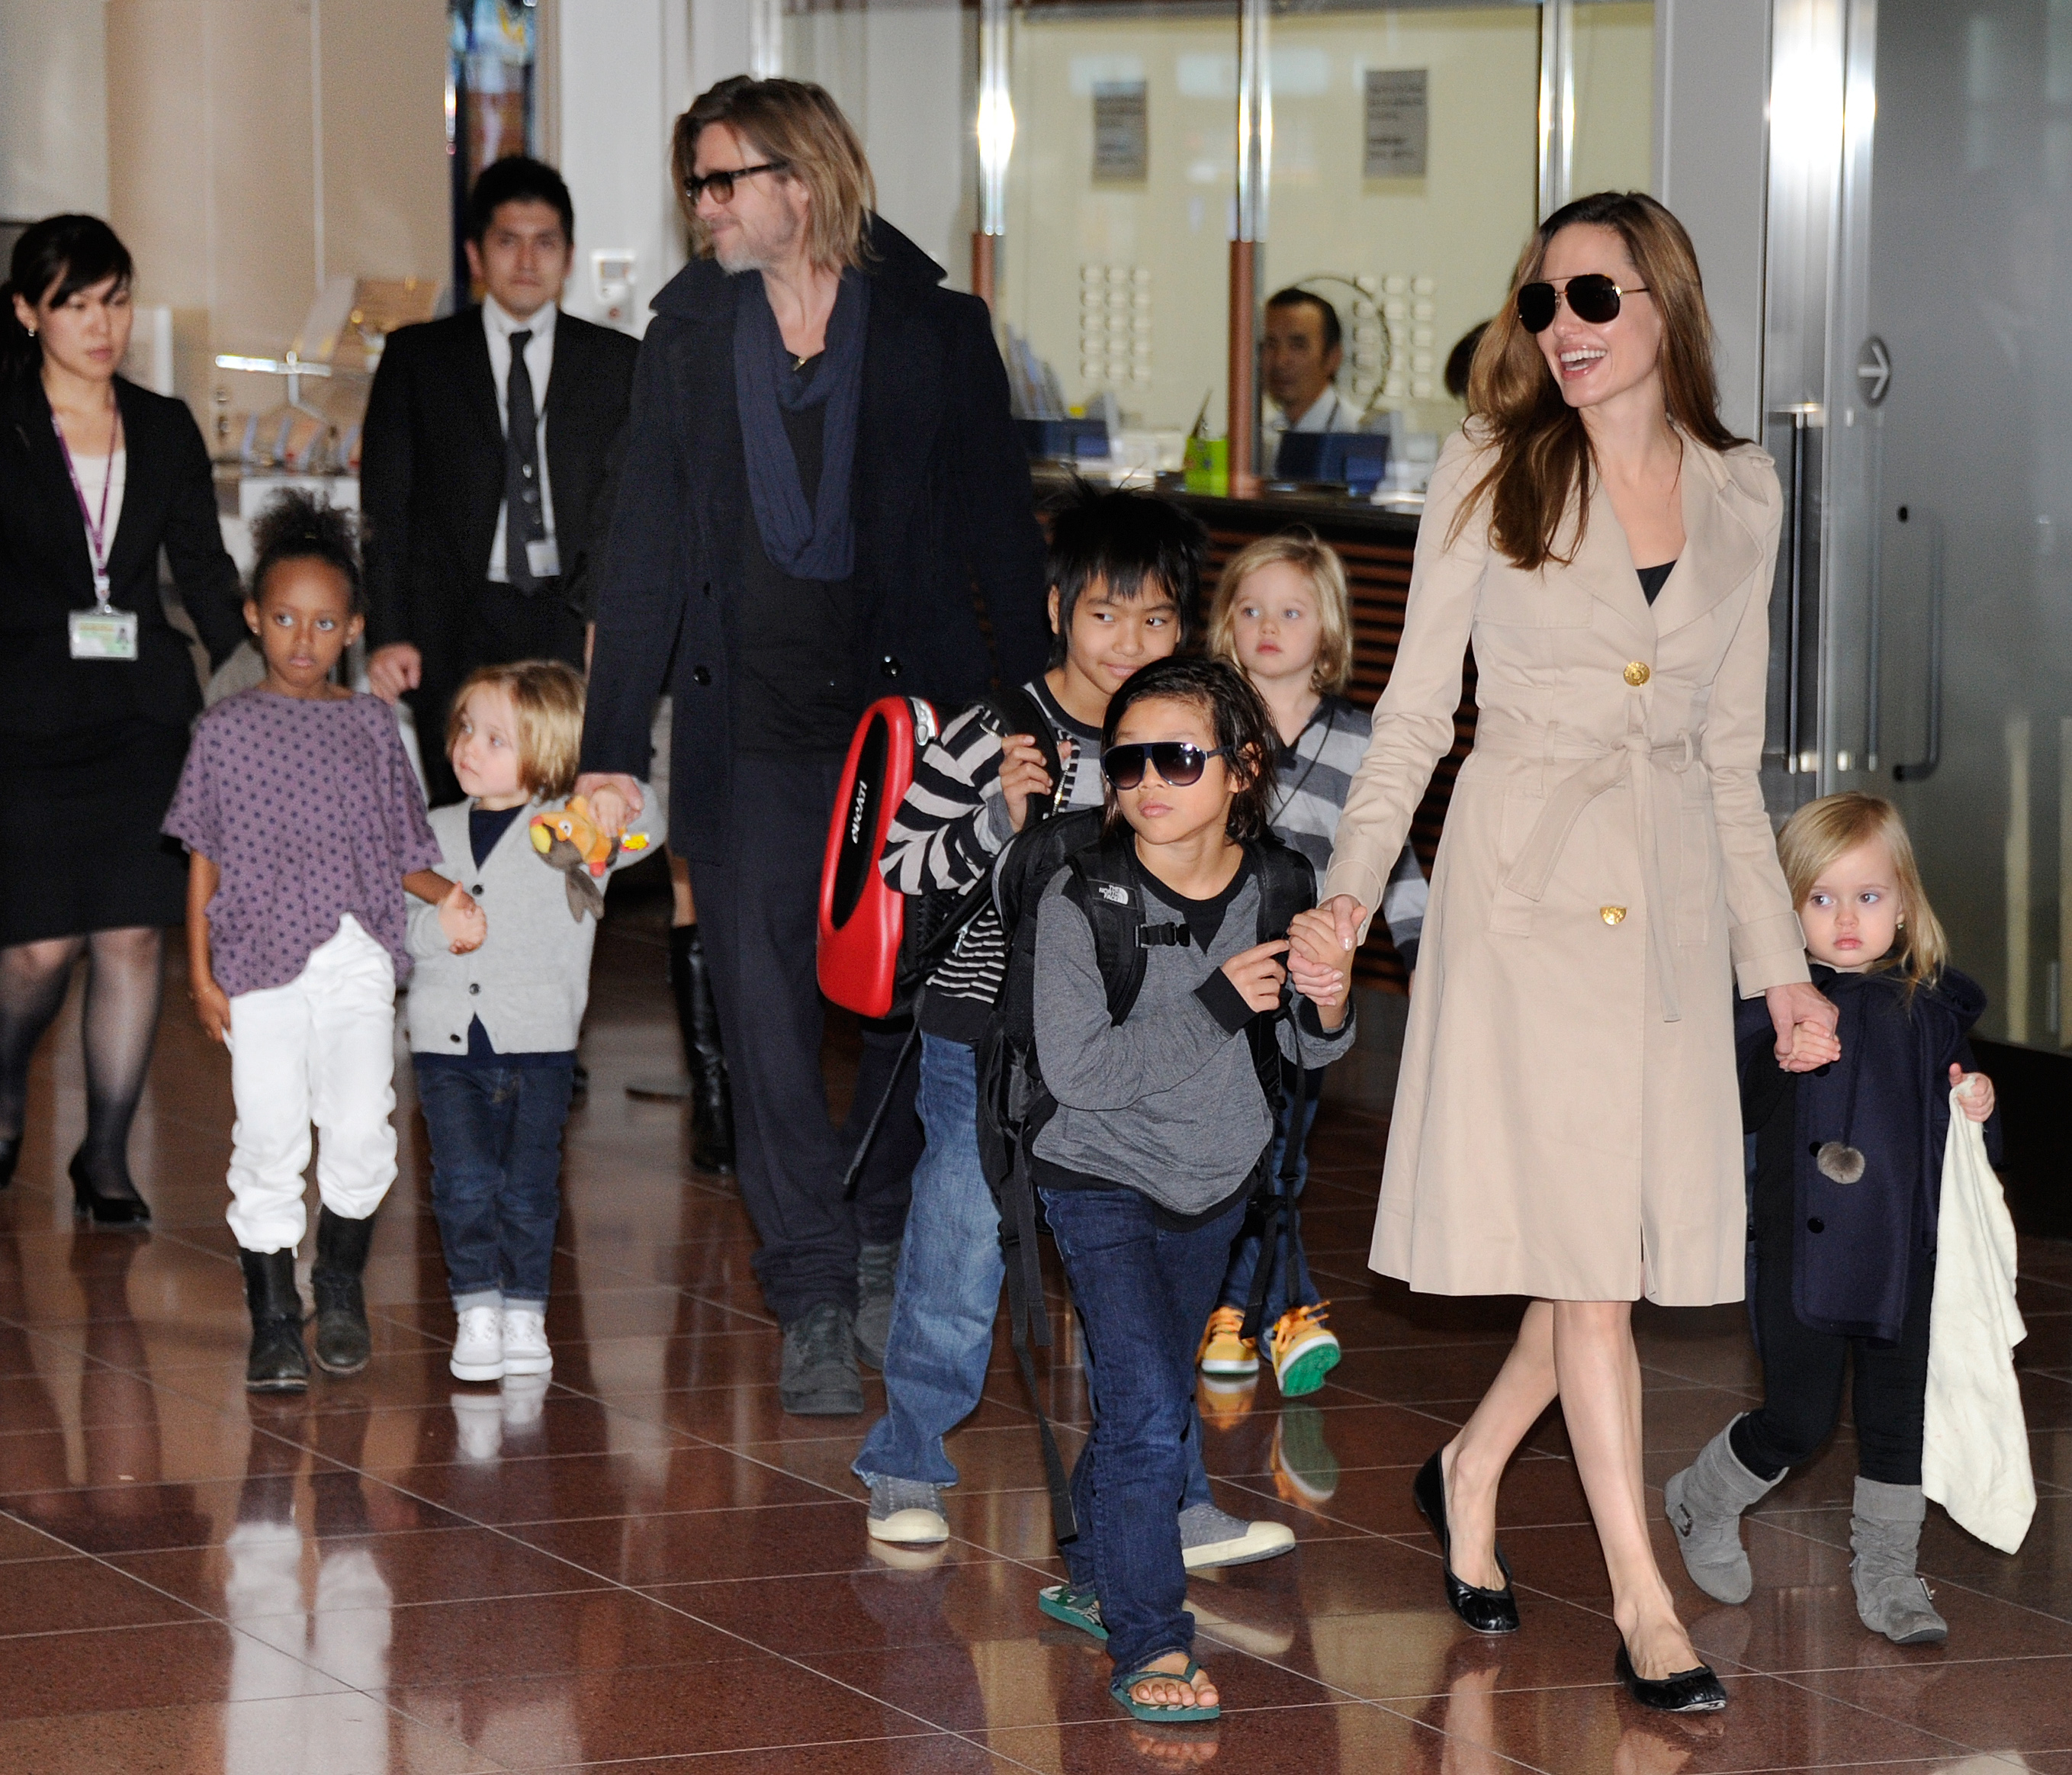 Brangelina Divorce: Angelina Jolie's Childhood Nanny Says She Has 'Abandonment Issues'